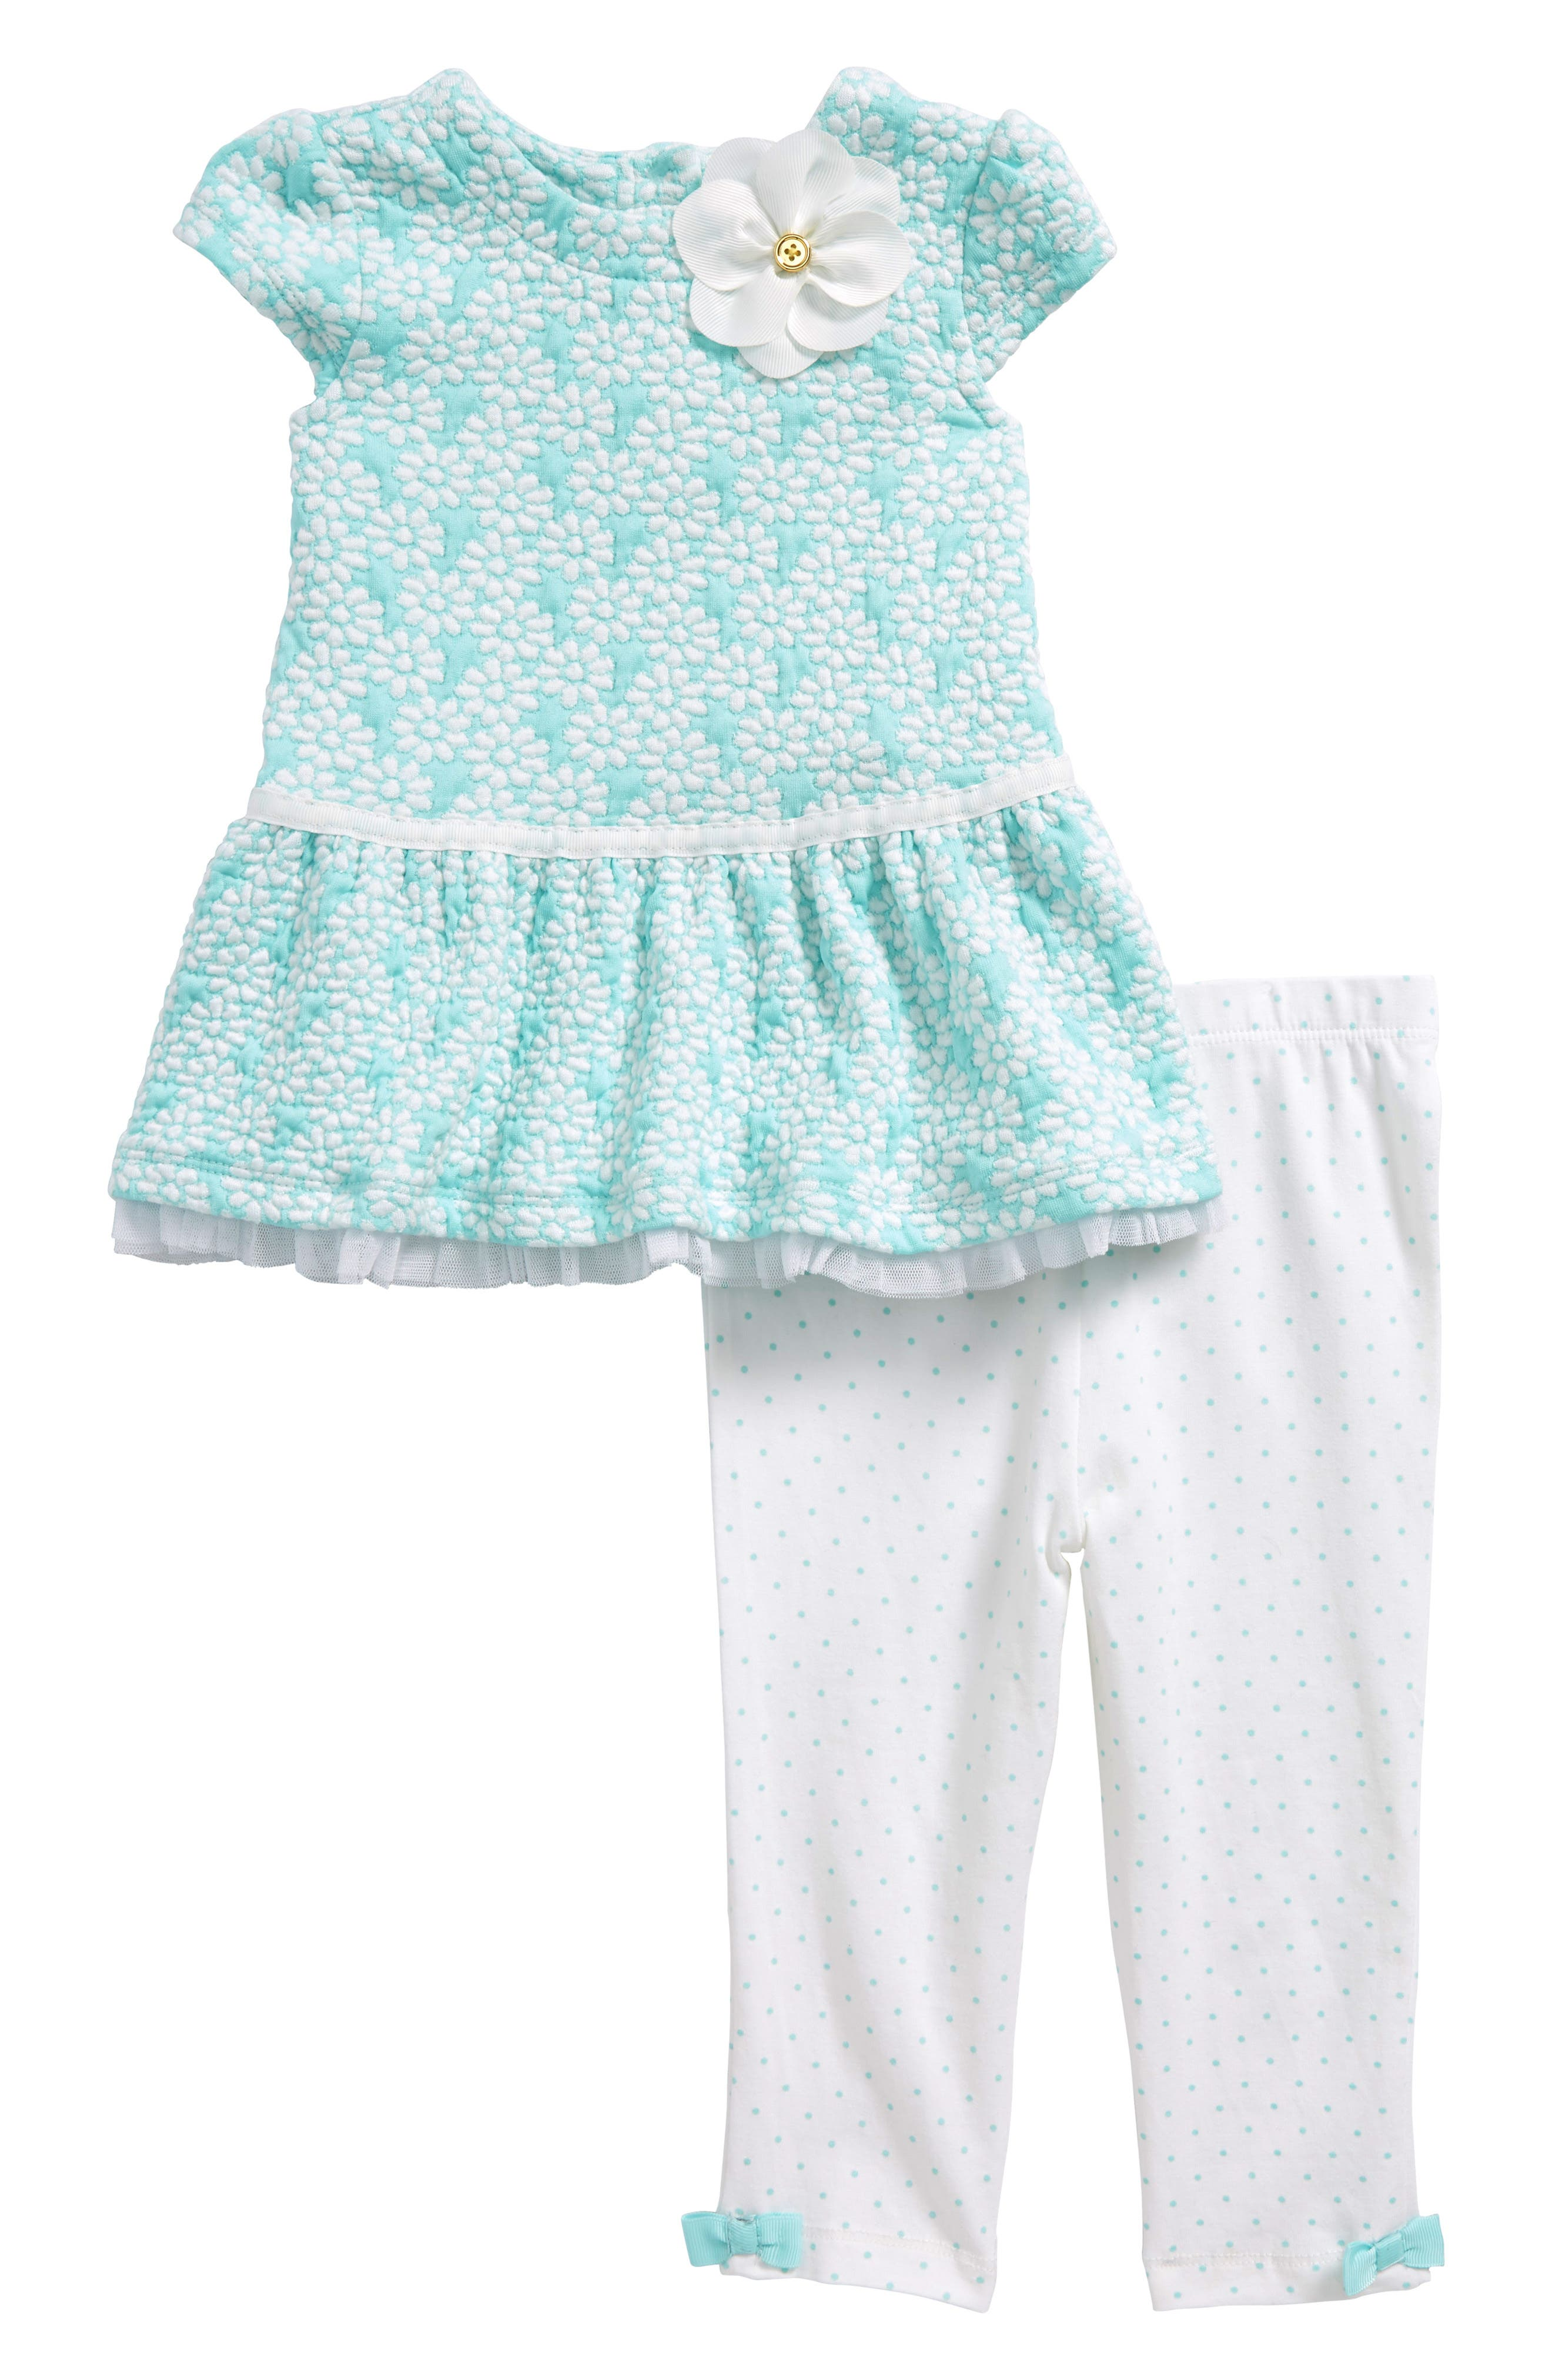 Floral Jacquard Dress & Leggings Set,                             Main thumbnail 1, color,                             Seafoam